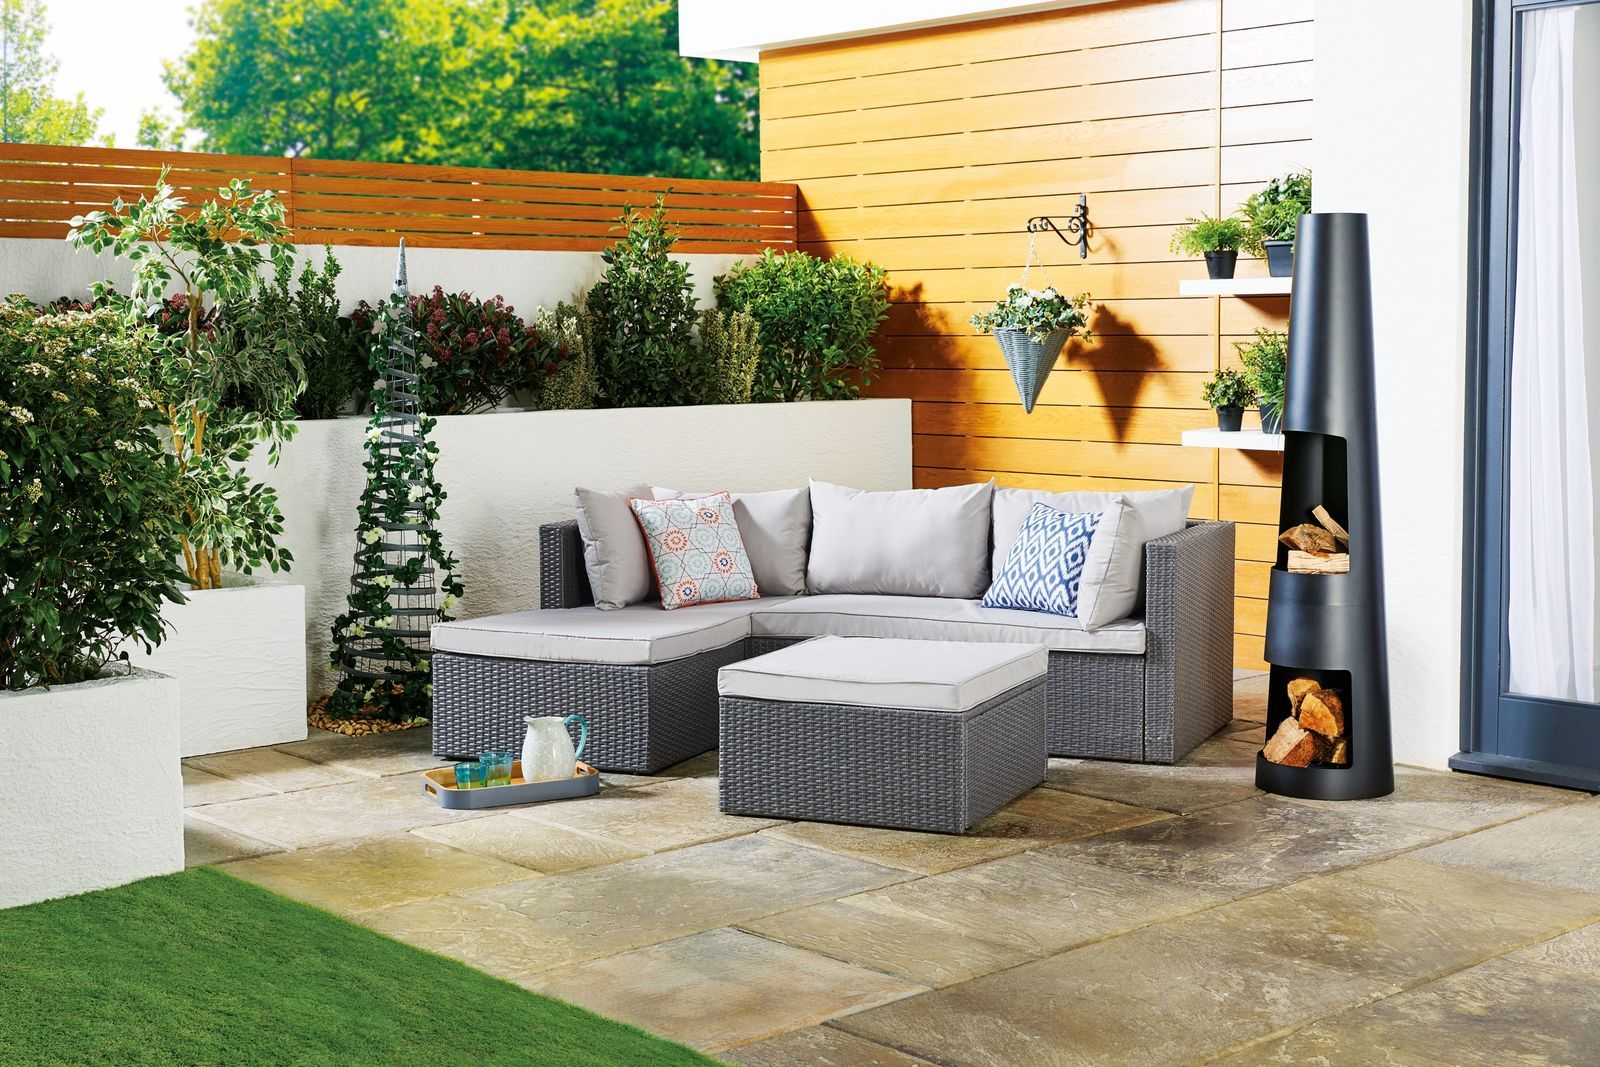 The new Aldi garden furniture range is here and there's